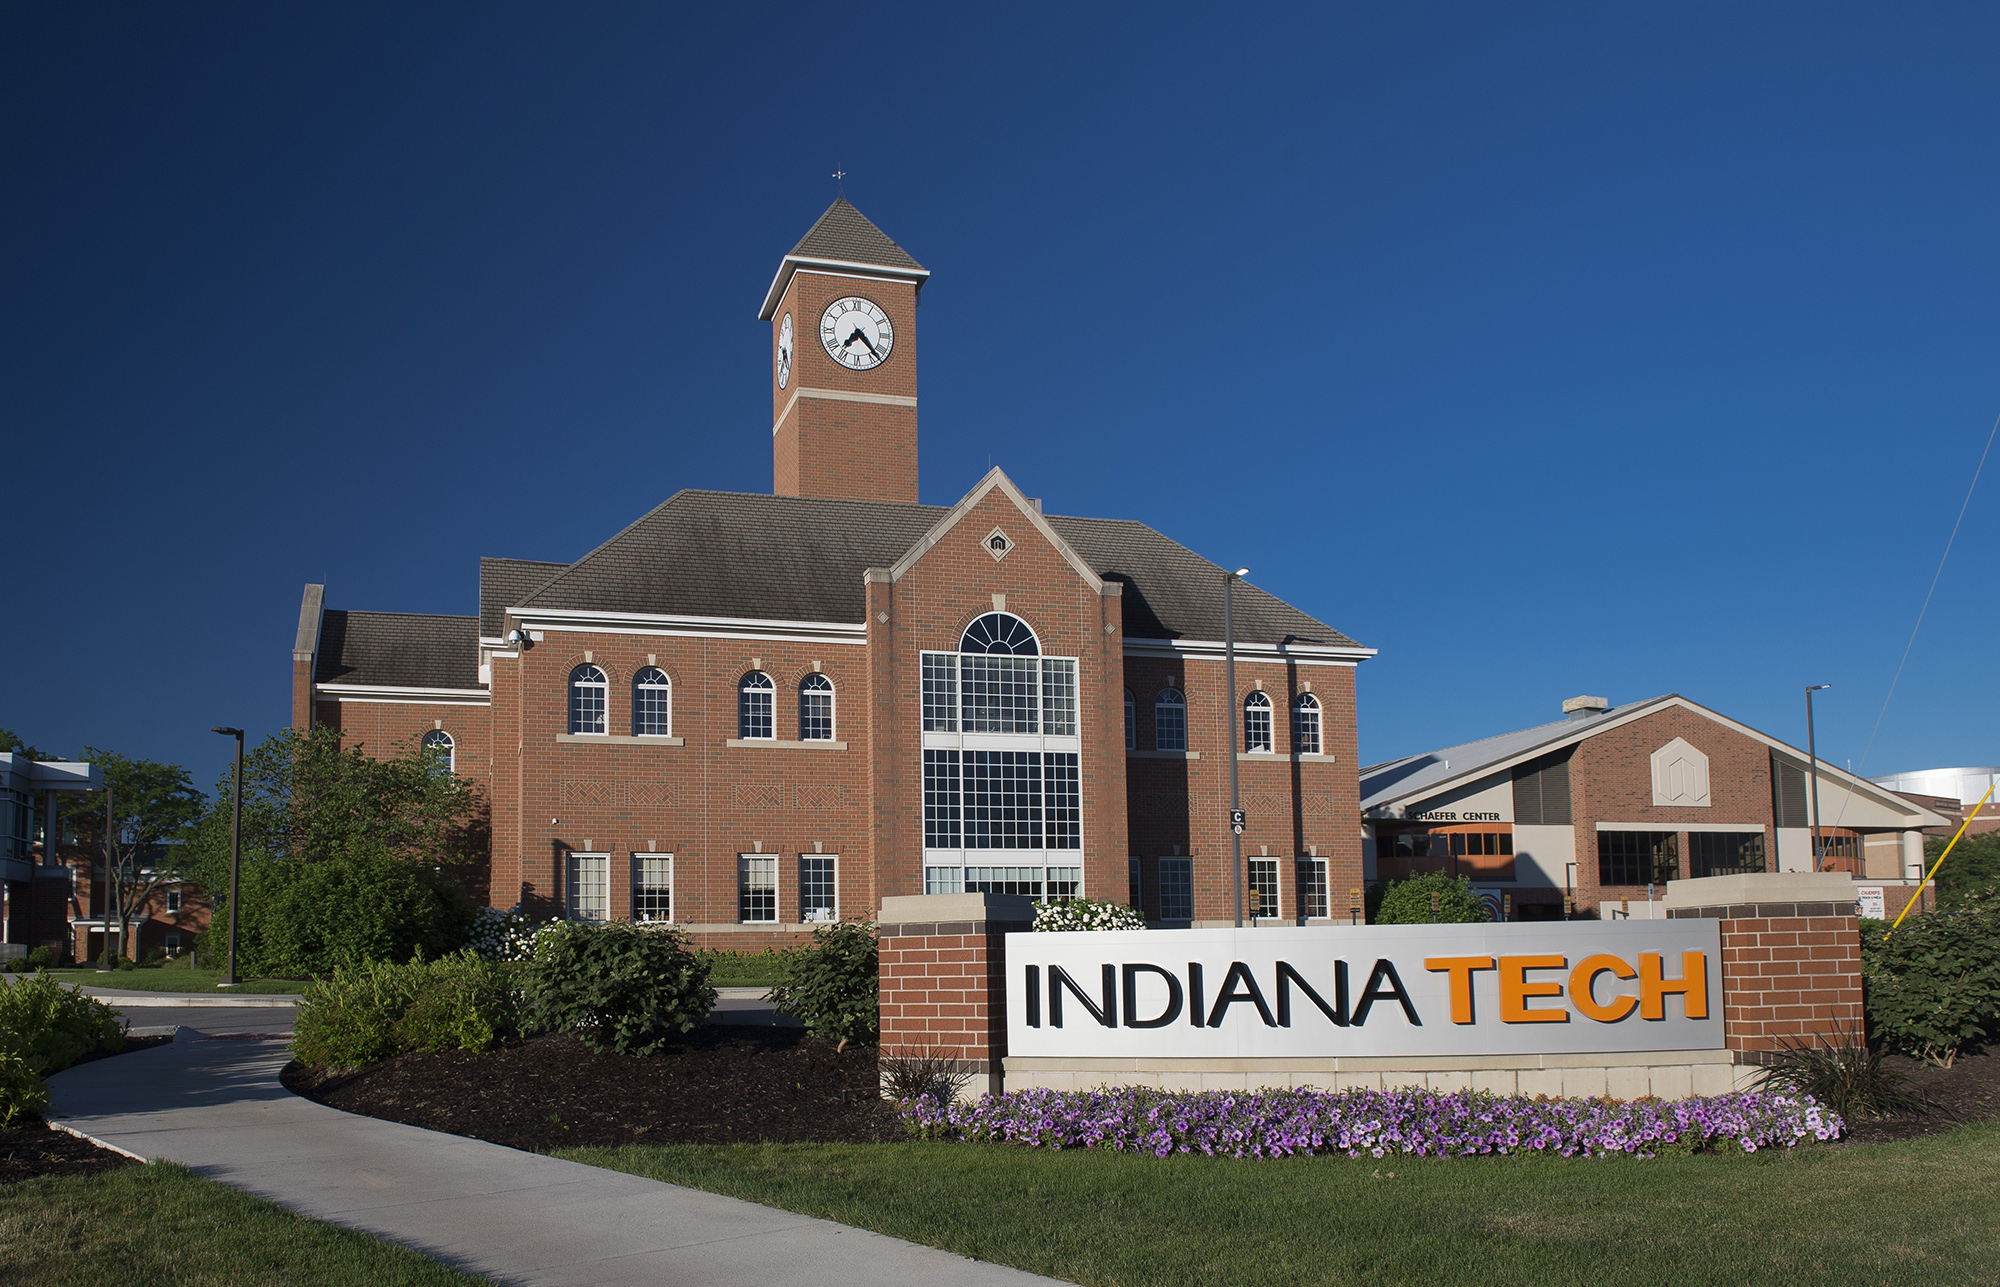 Indiana Tech Marketing Downloadable Images